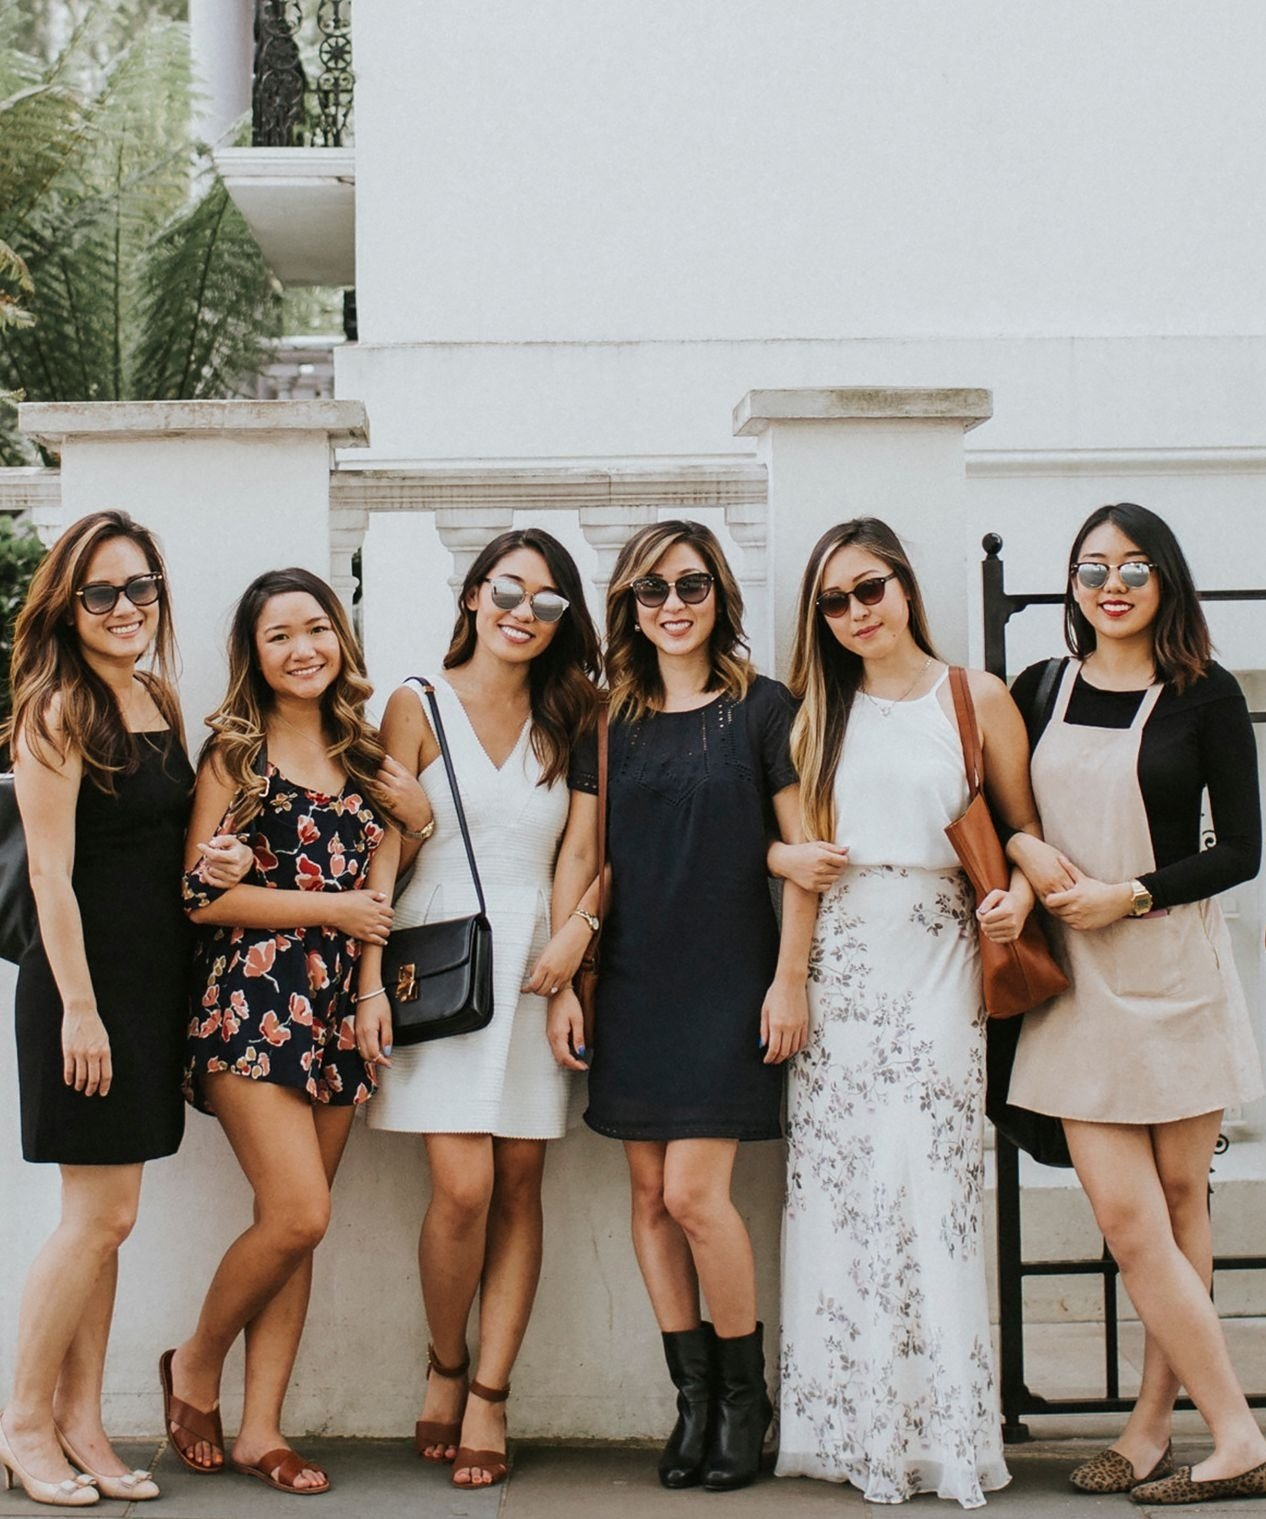 10 Most Recommended Bachelorette Party Ideas Los Angeles bachelorette party ideas cool bridal events